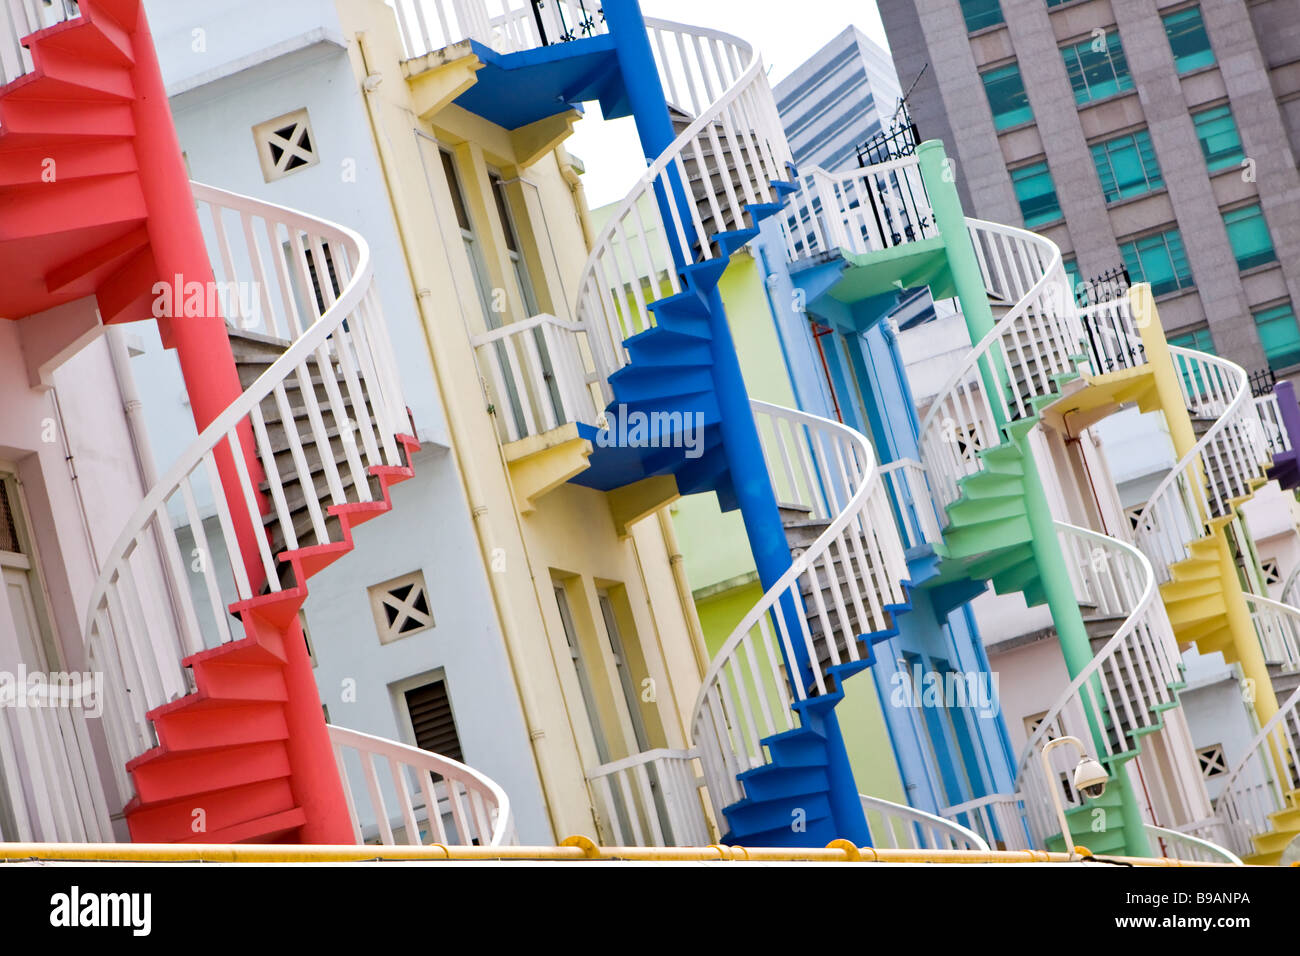 Colourful Spiral Staircases in Singapore - Stock Image